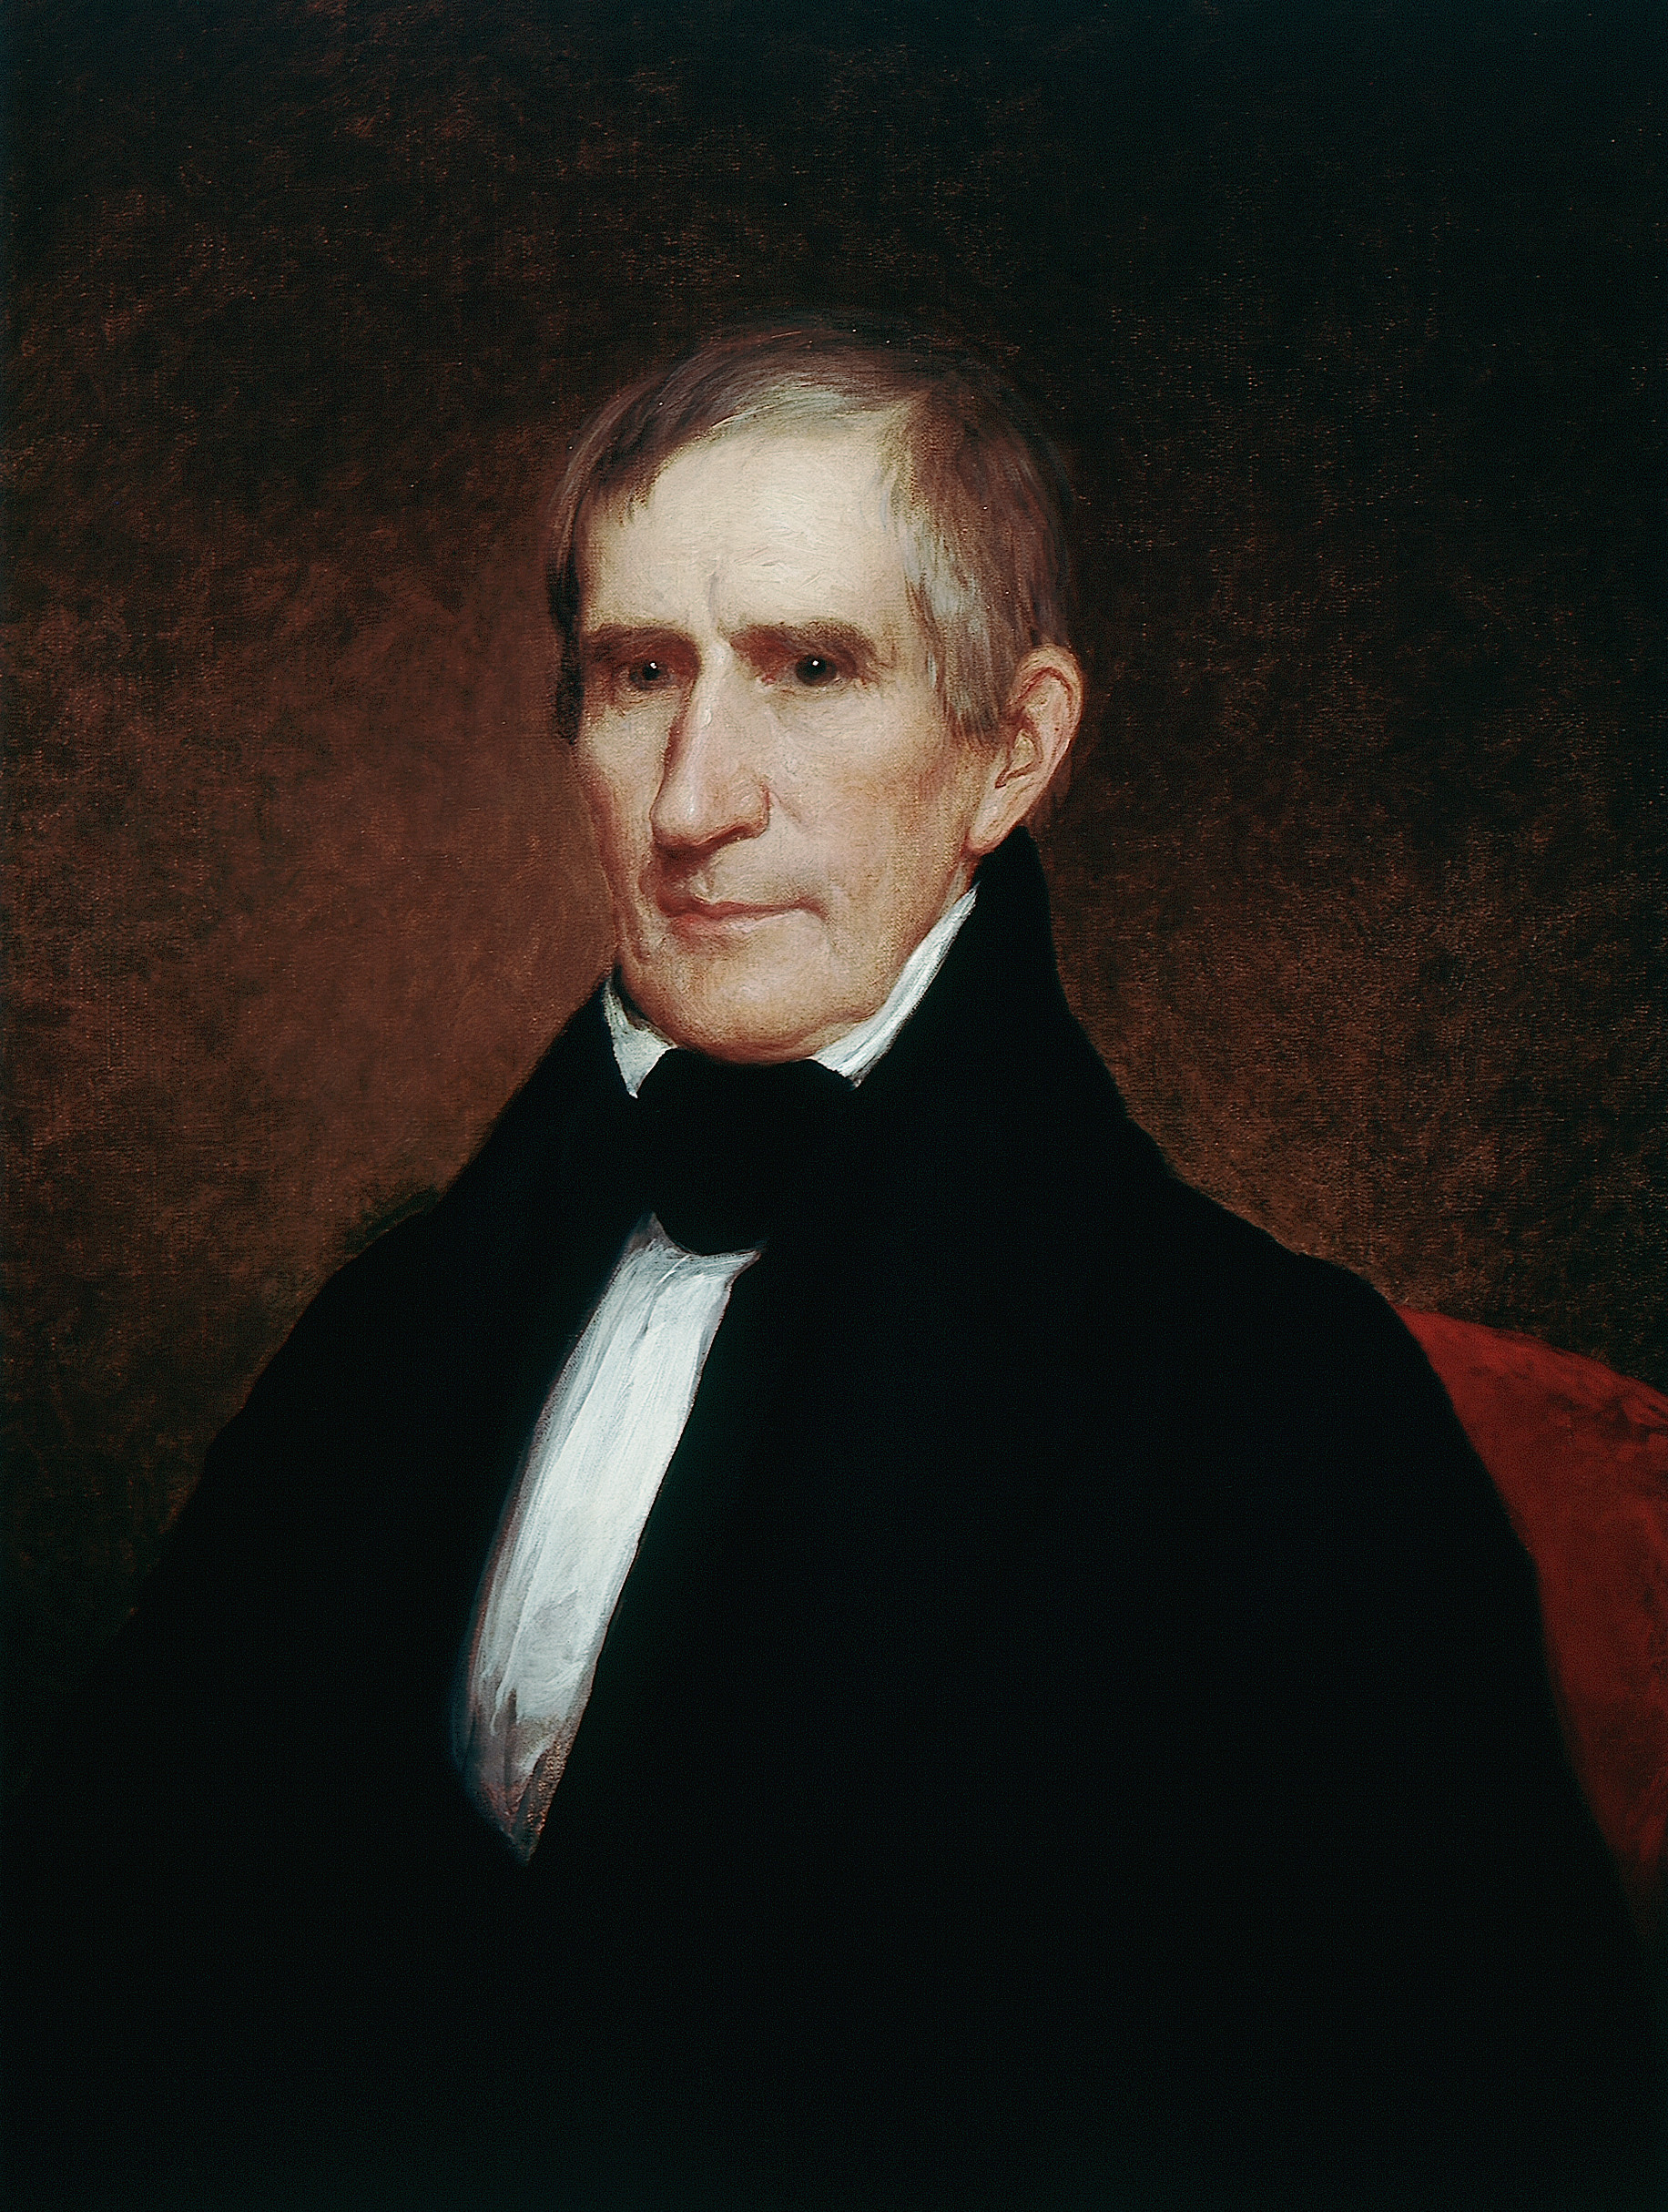 founding fathers and pre civil war presidents pictures